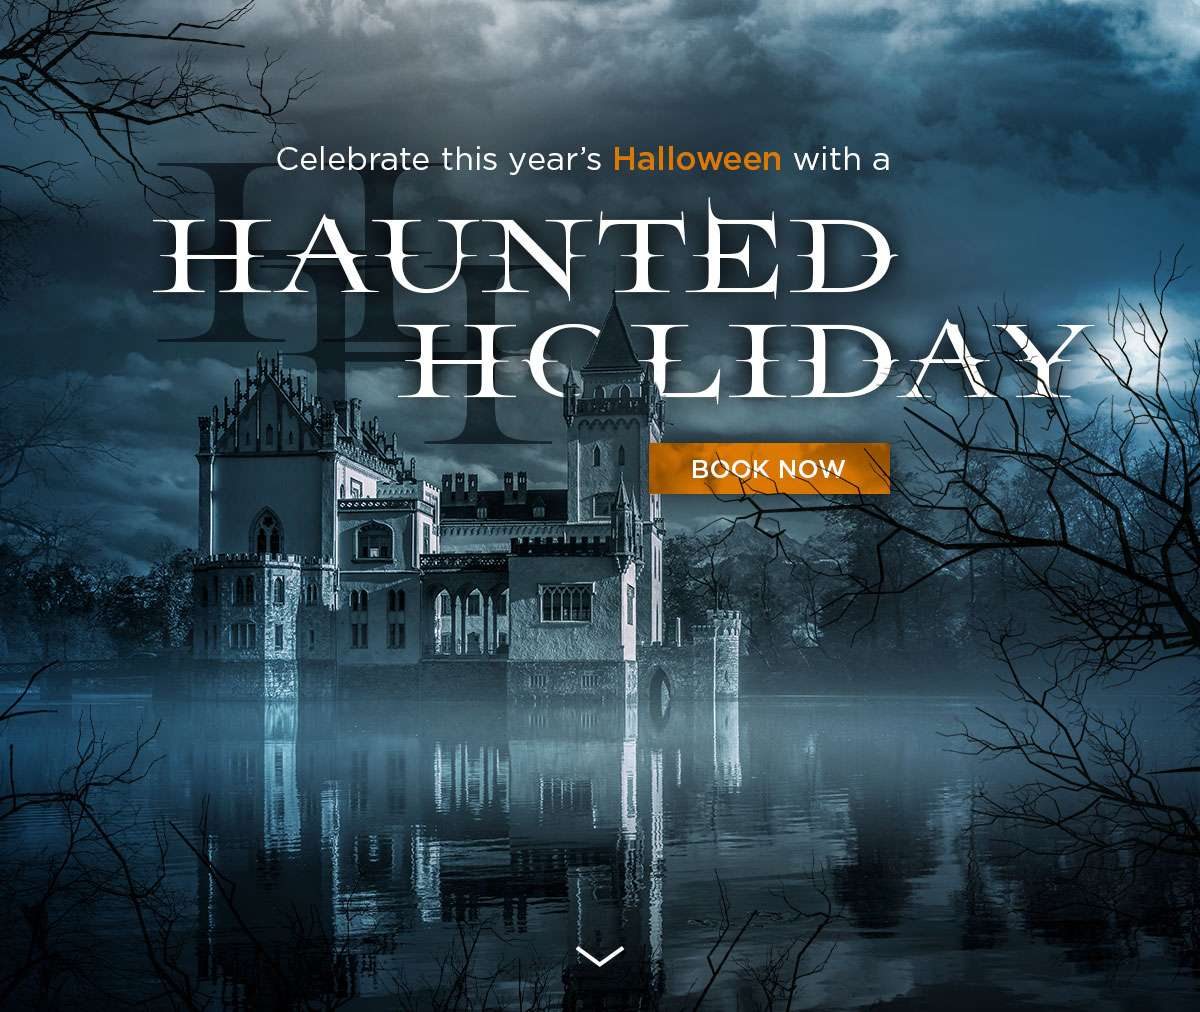 Celebrate this year's Halloween with a Haunted Holiday !